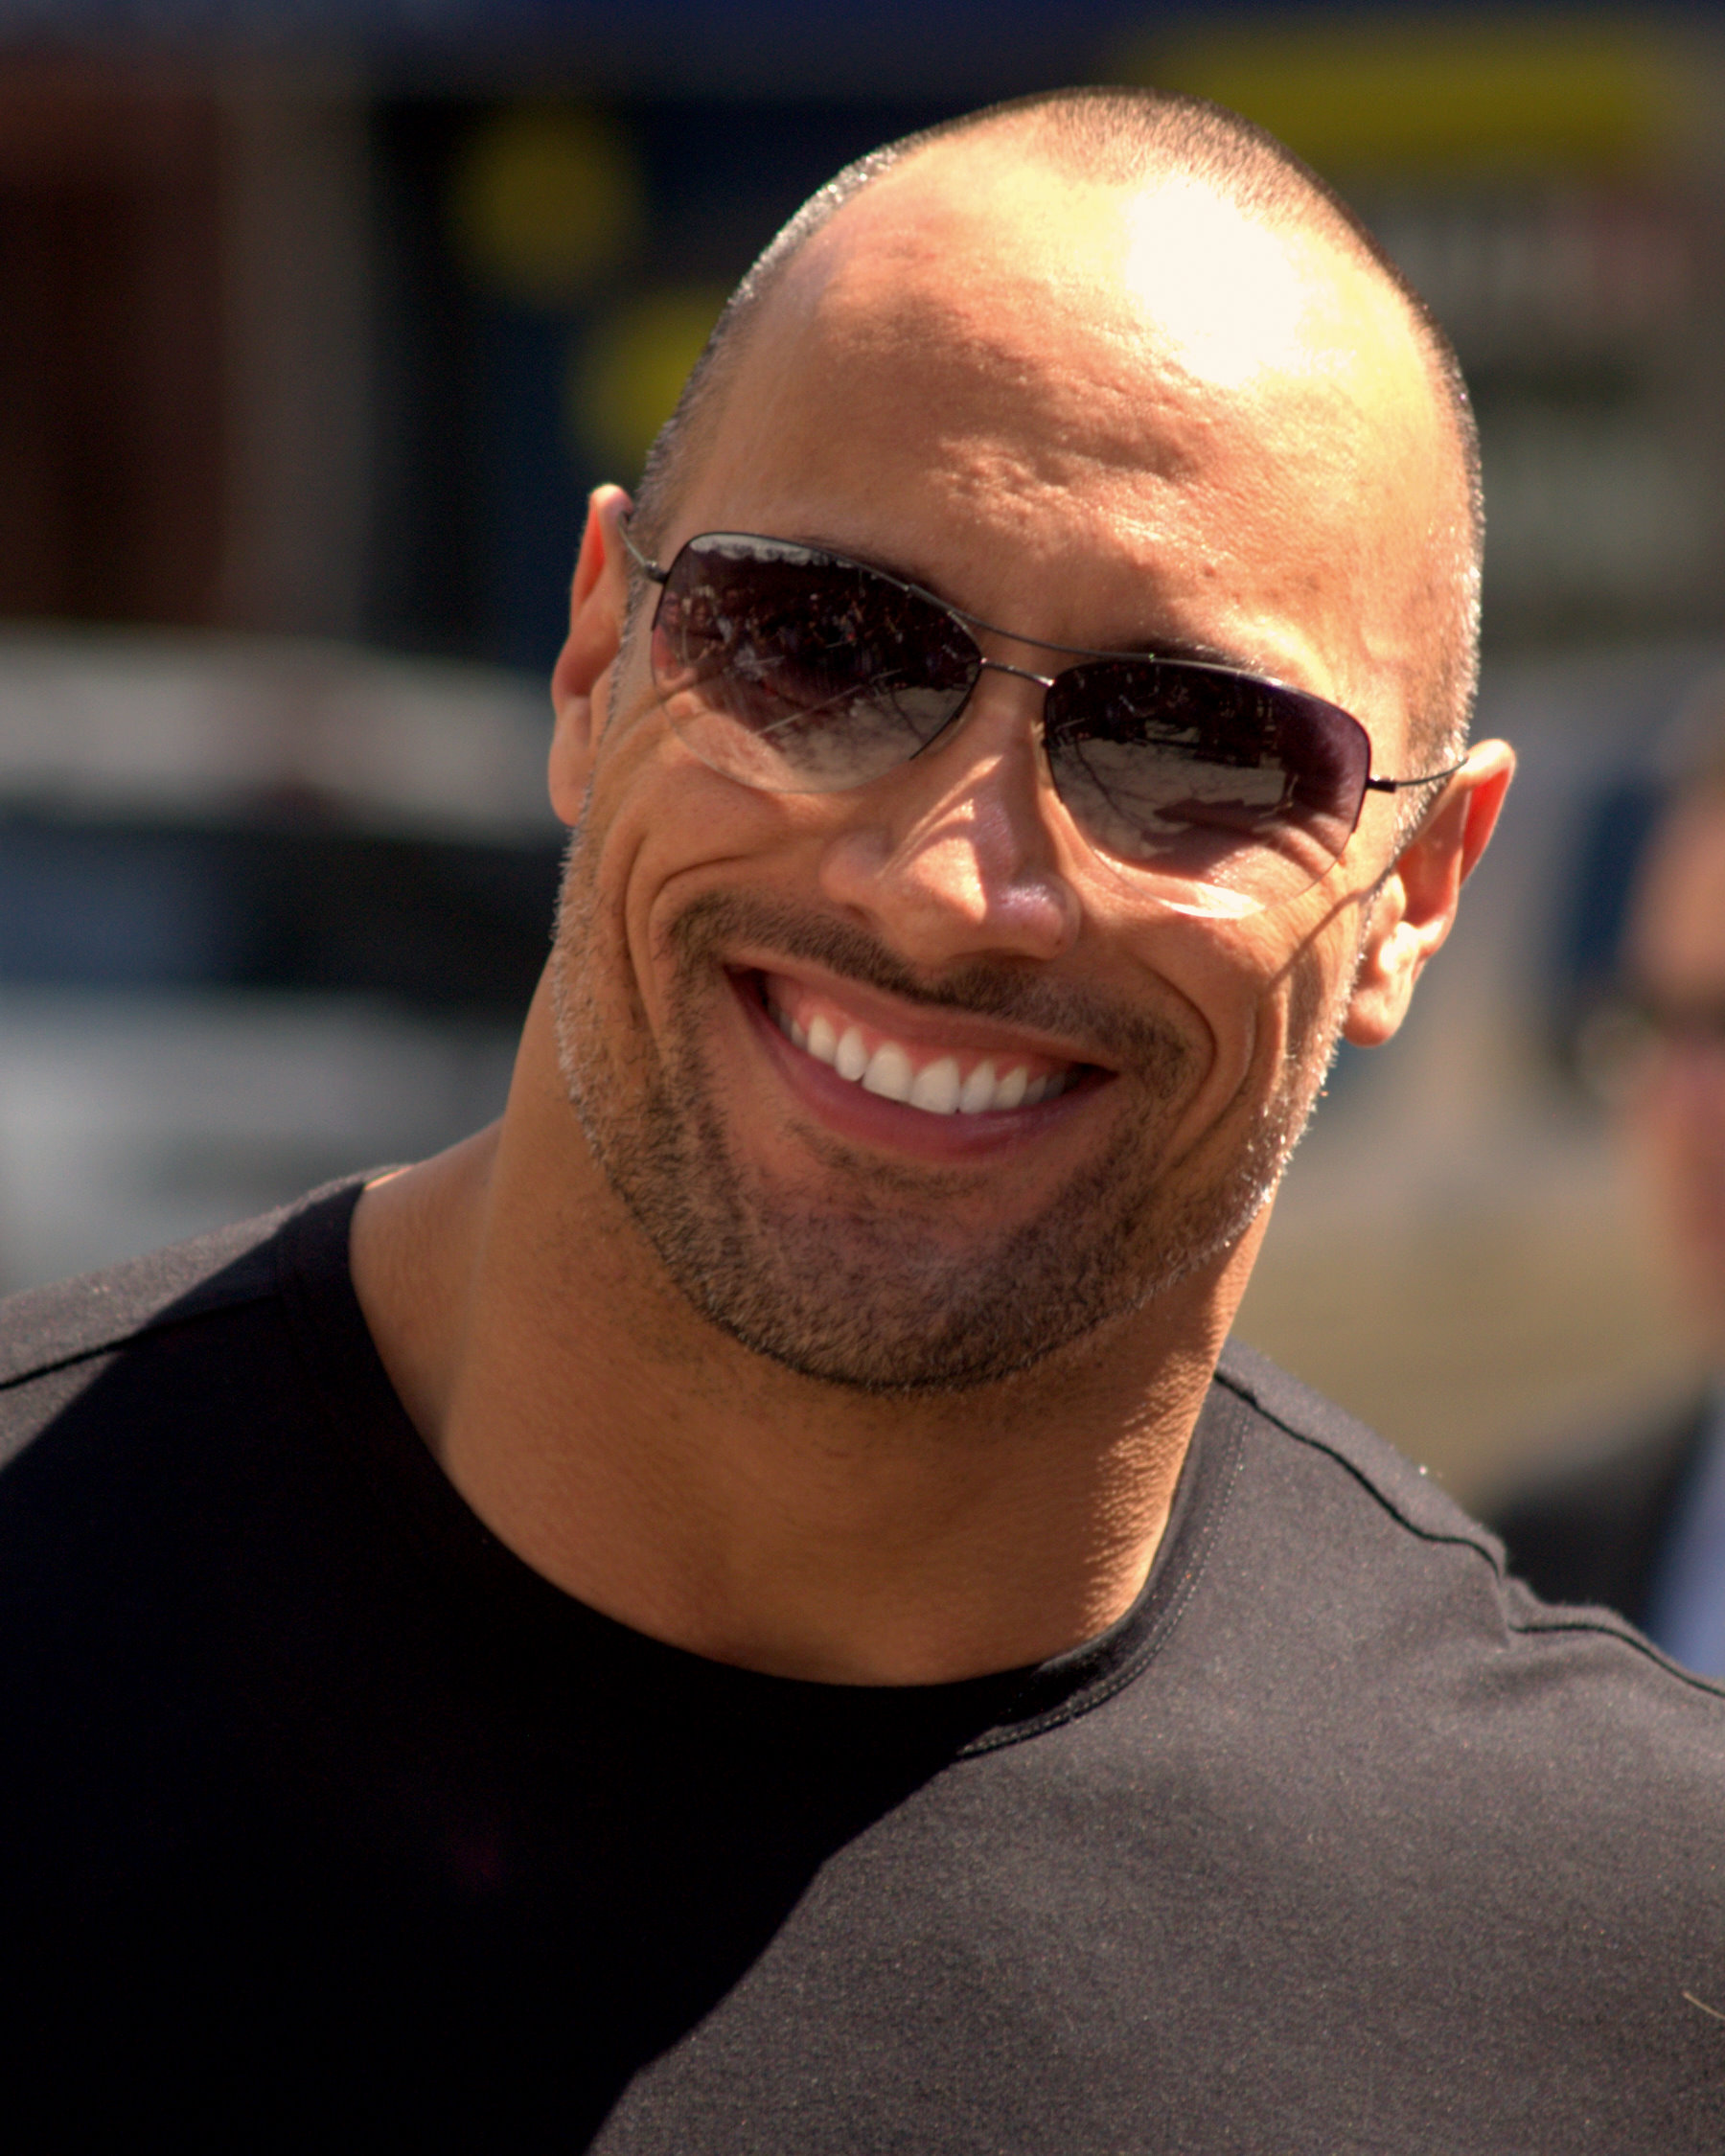 Famous People To Follow On Instagram: Dwayne Johnson Height And Weight Measurements